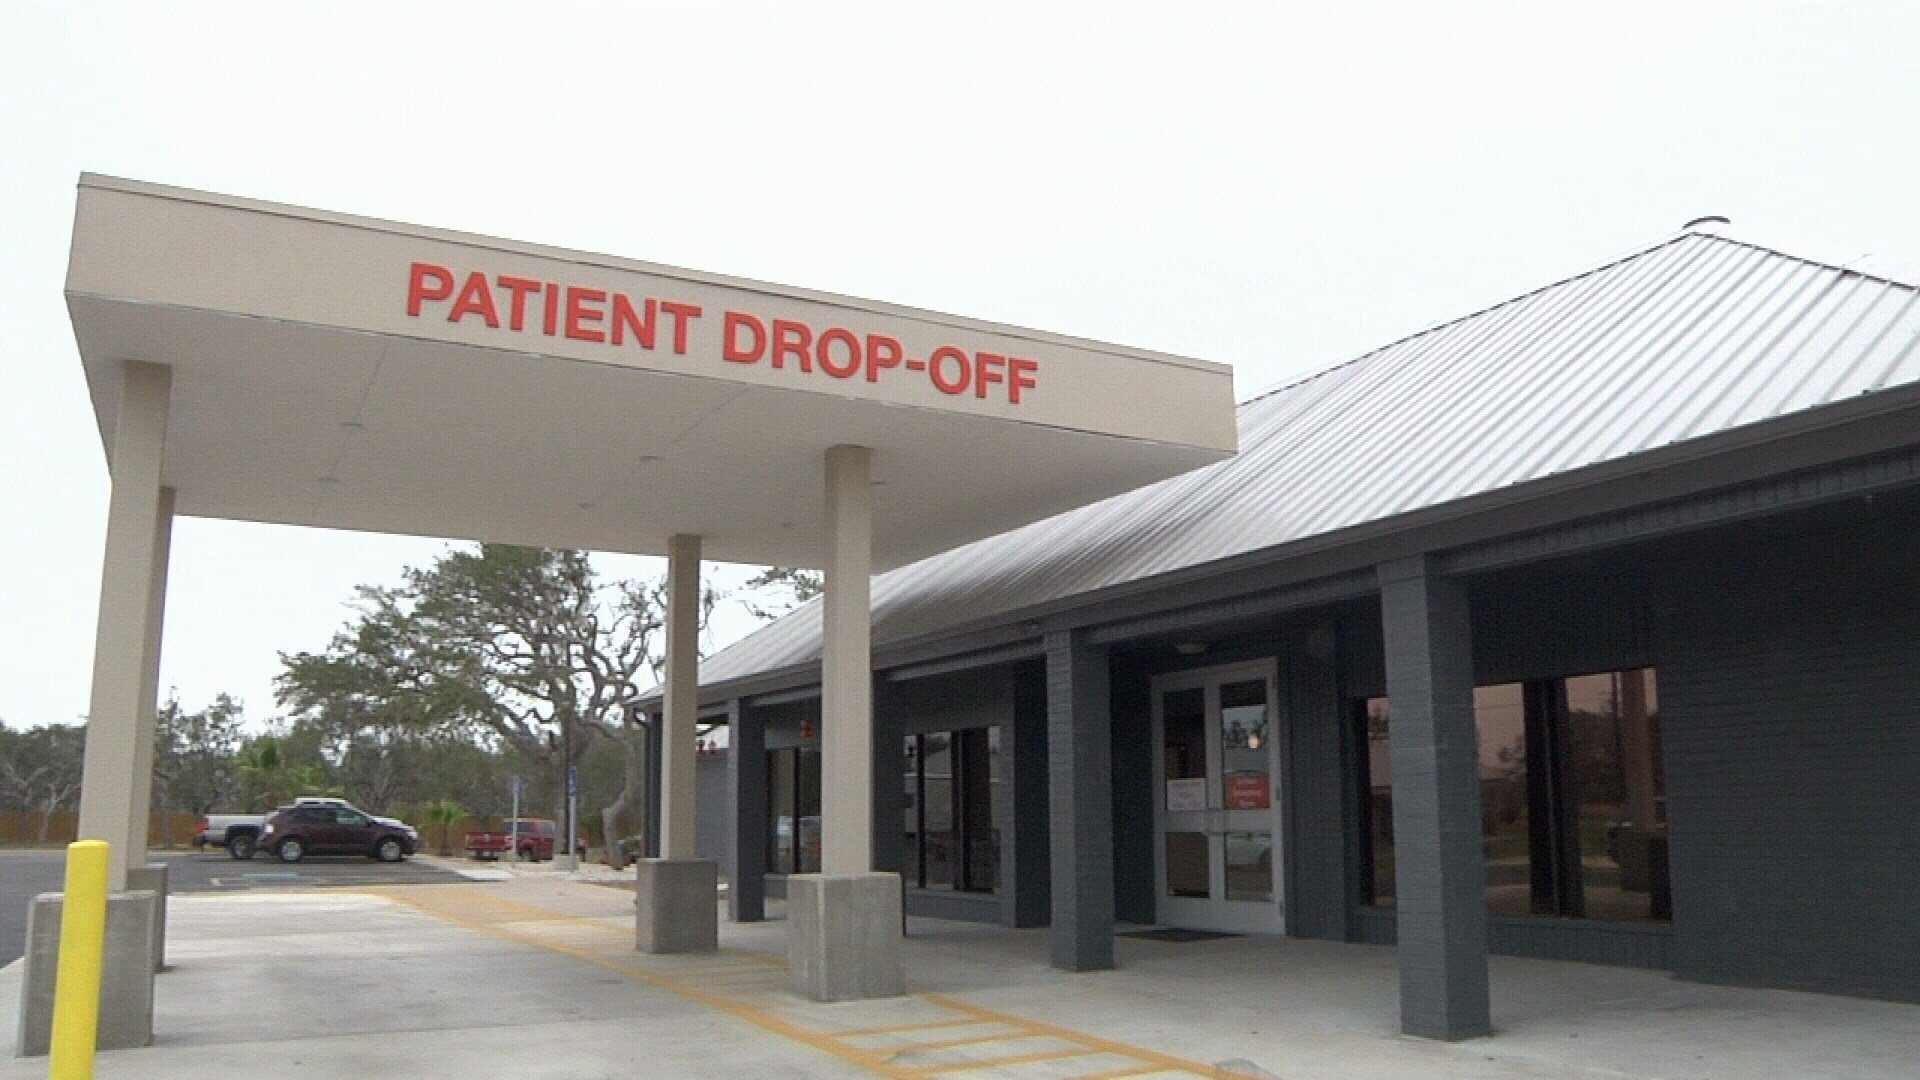 Code 3 Emergency Room, a stand alone facility in Rockport, got a surge of patients after Hurricane Harvey but the law prohibits them from accepting Medicaid or Medicare.